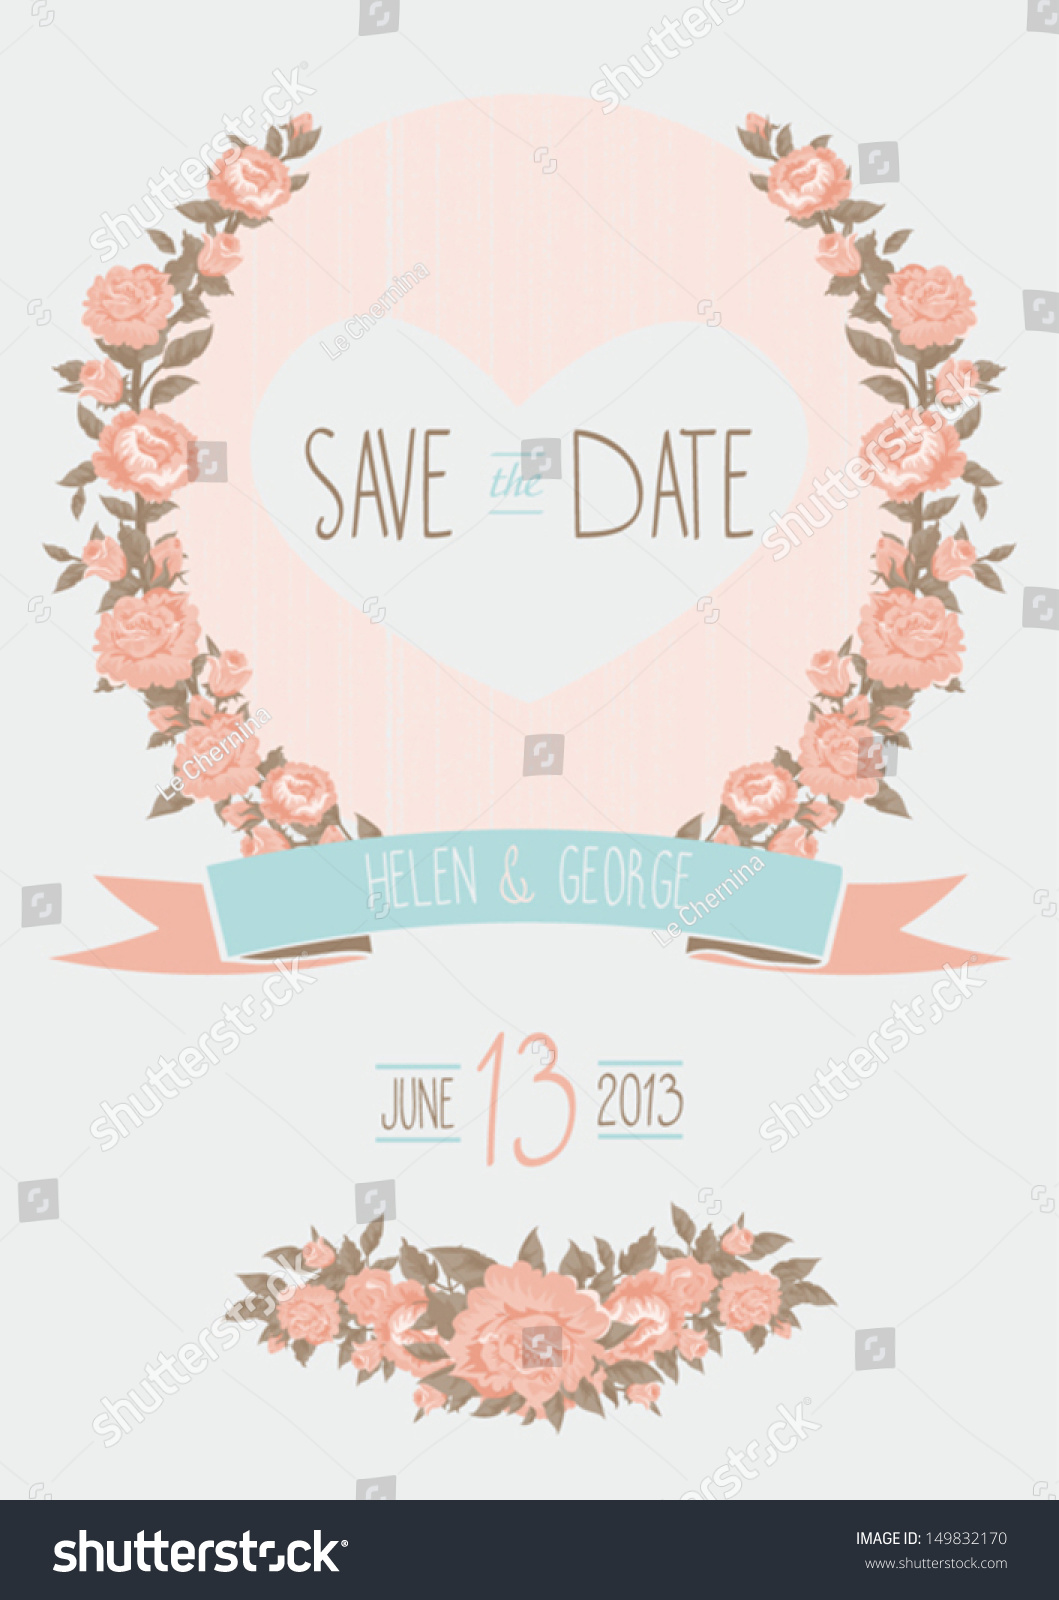 Save Date Wedding Invitation Shabby Chic Stock Vector 149832170 ...